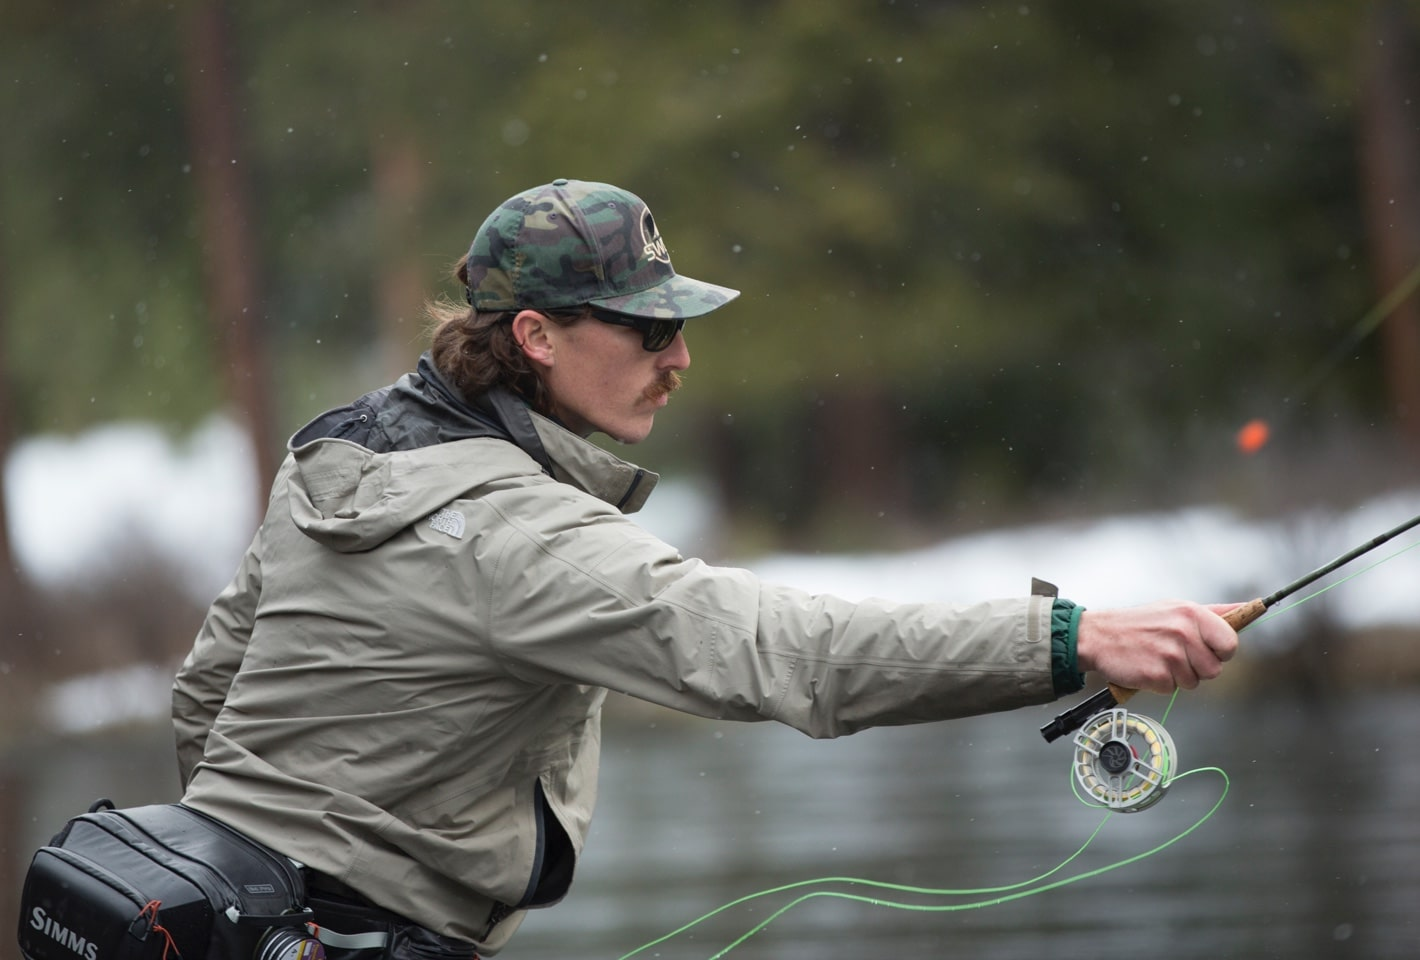 Landon in river fly fishing